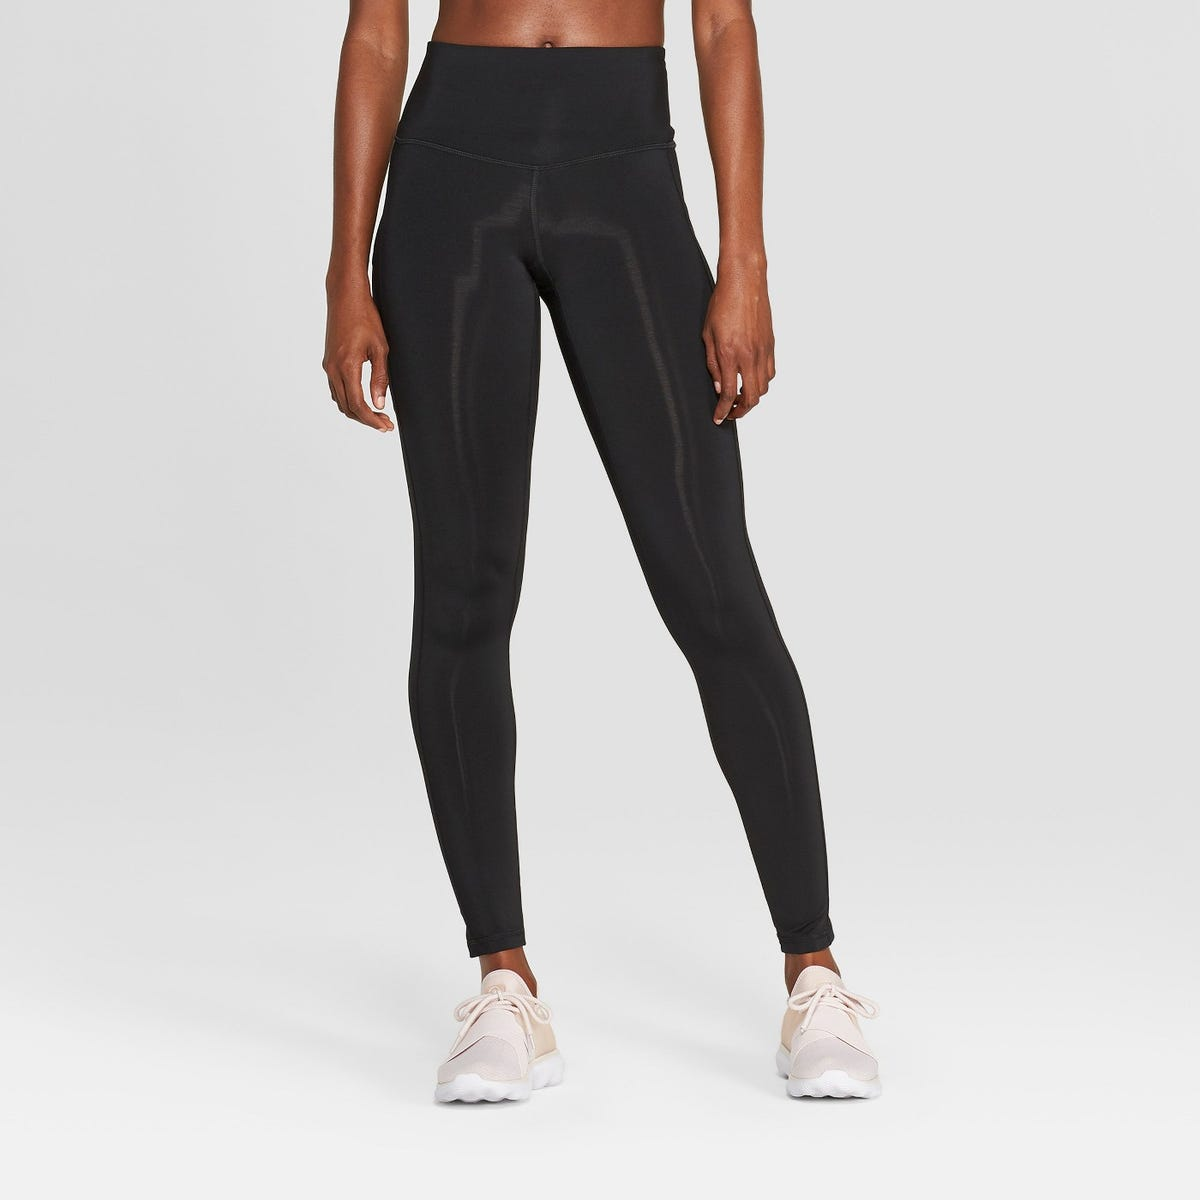 7d7f36ceea7ba Best Black Leggings - Reviews On Top Brands & Styles